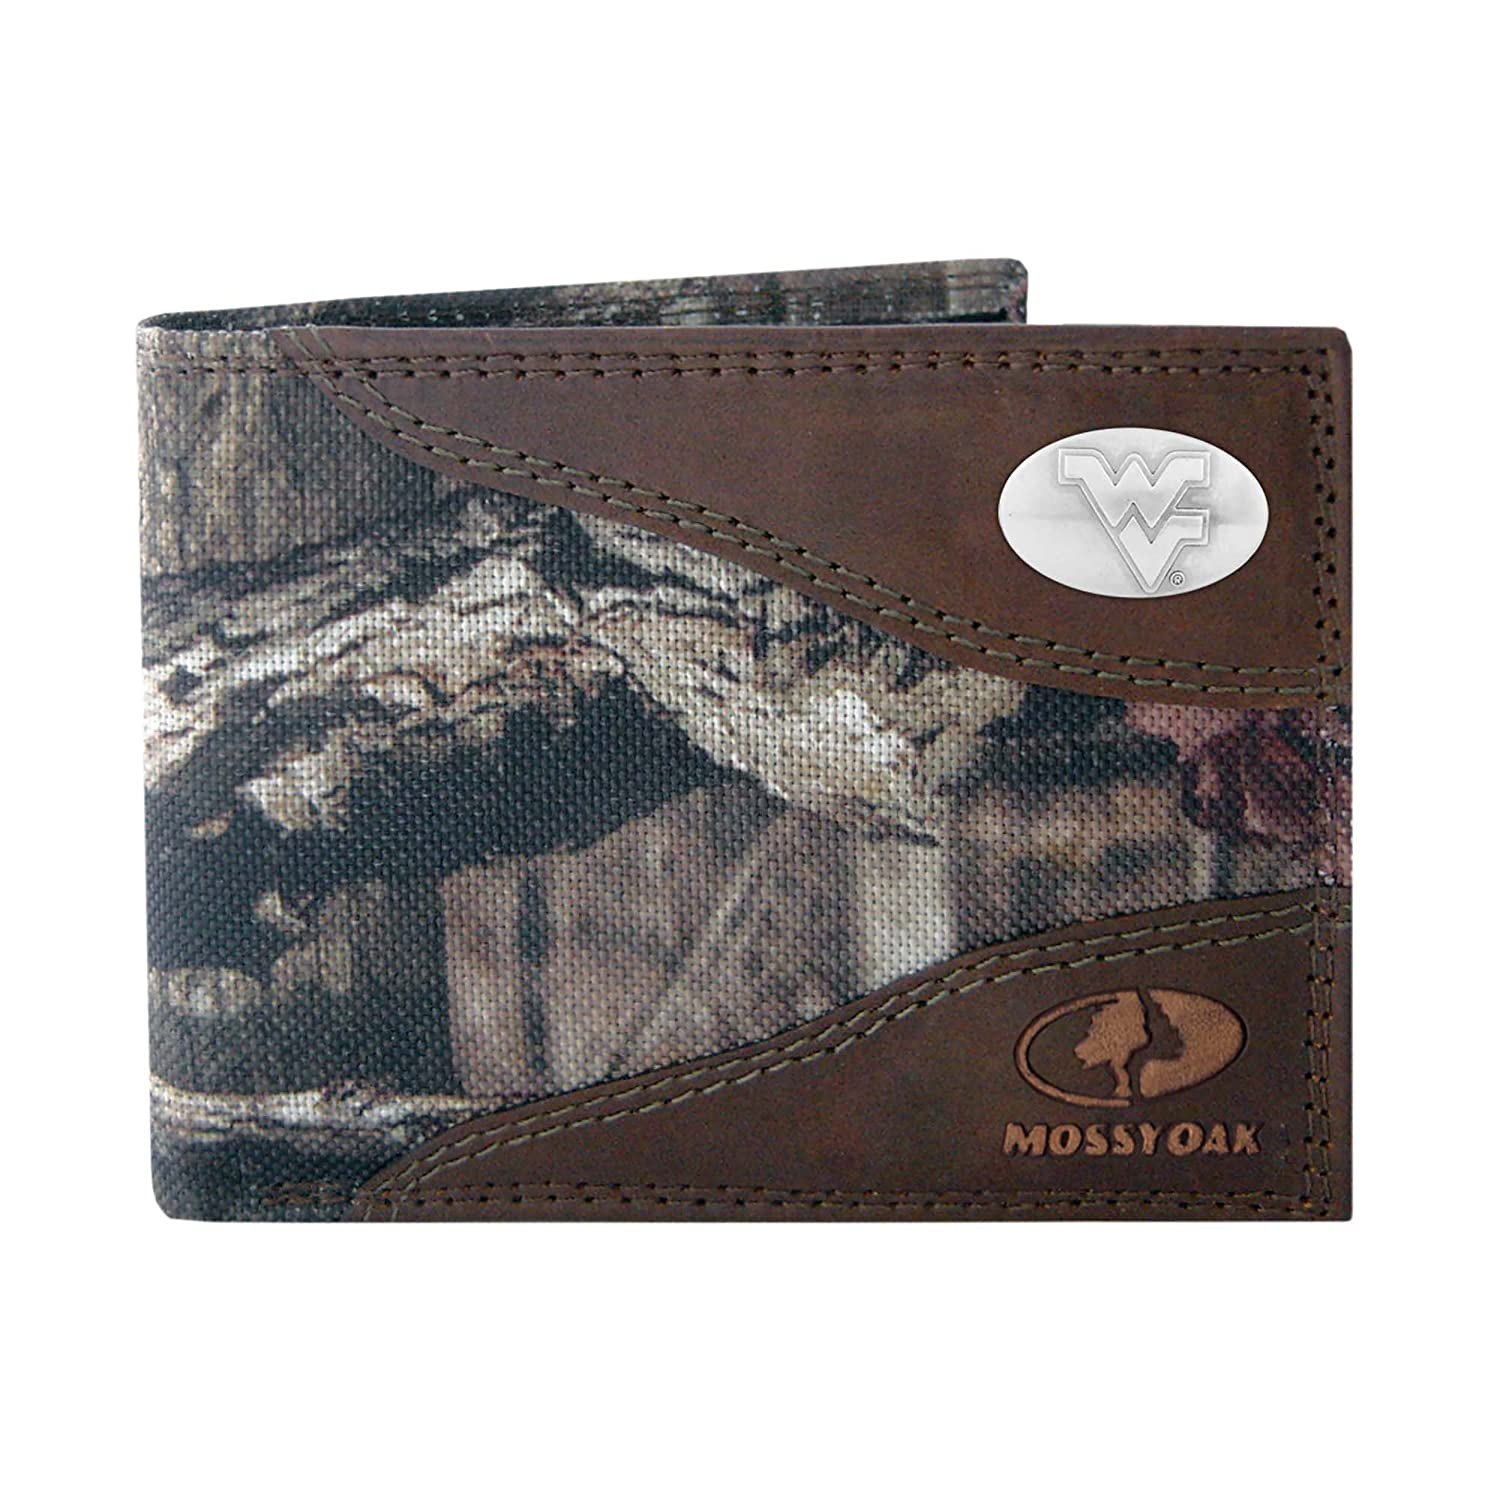 ZEP-PRO NCAA Mens Mossy Oak Nylon and Leather Passcase Concho Wallet